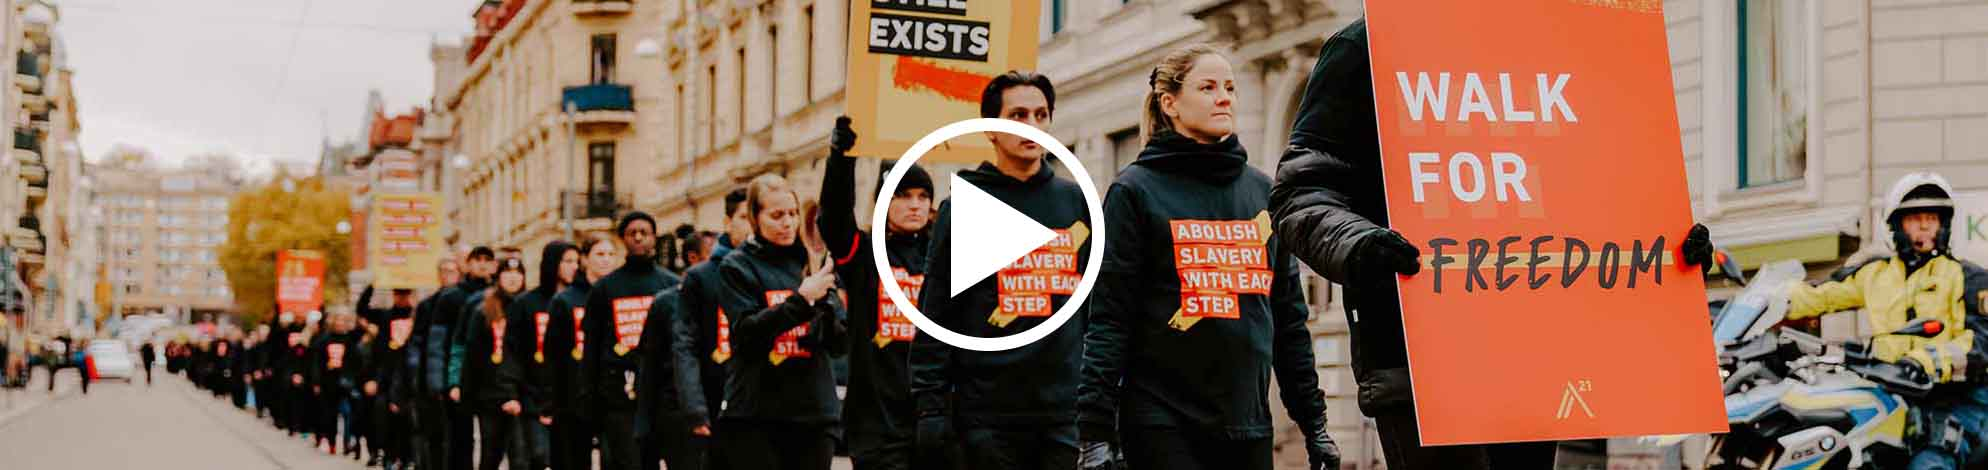 Walk for Freedom Video